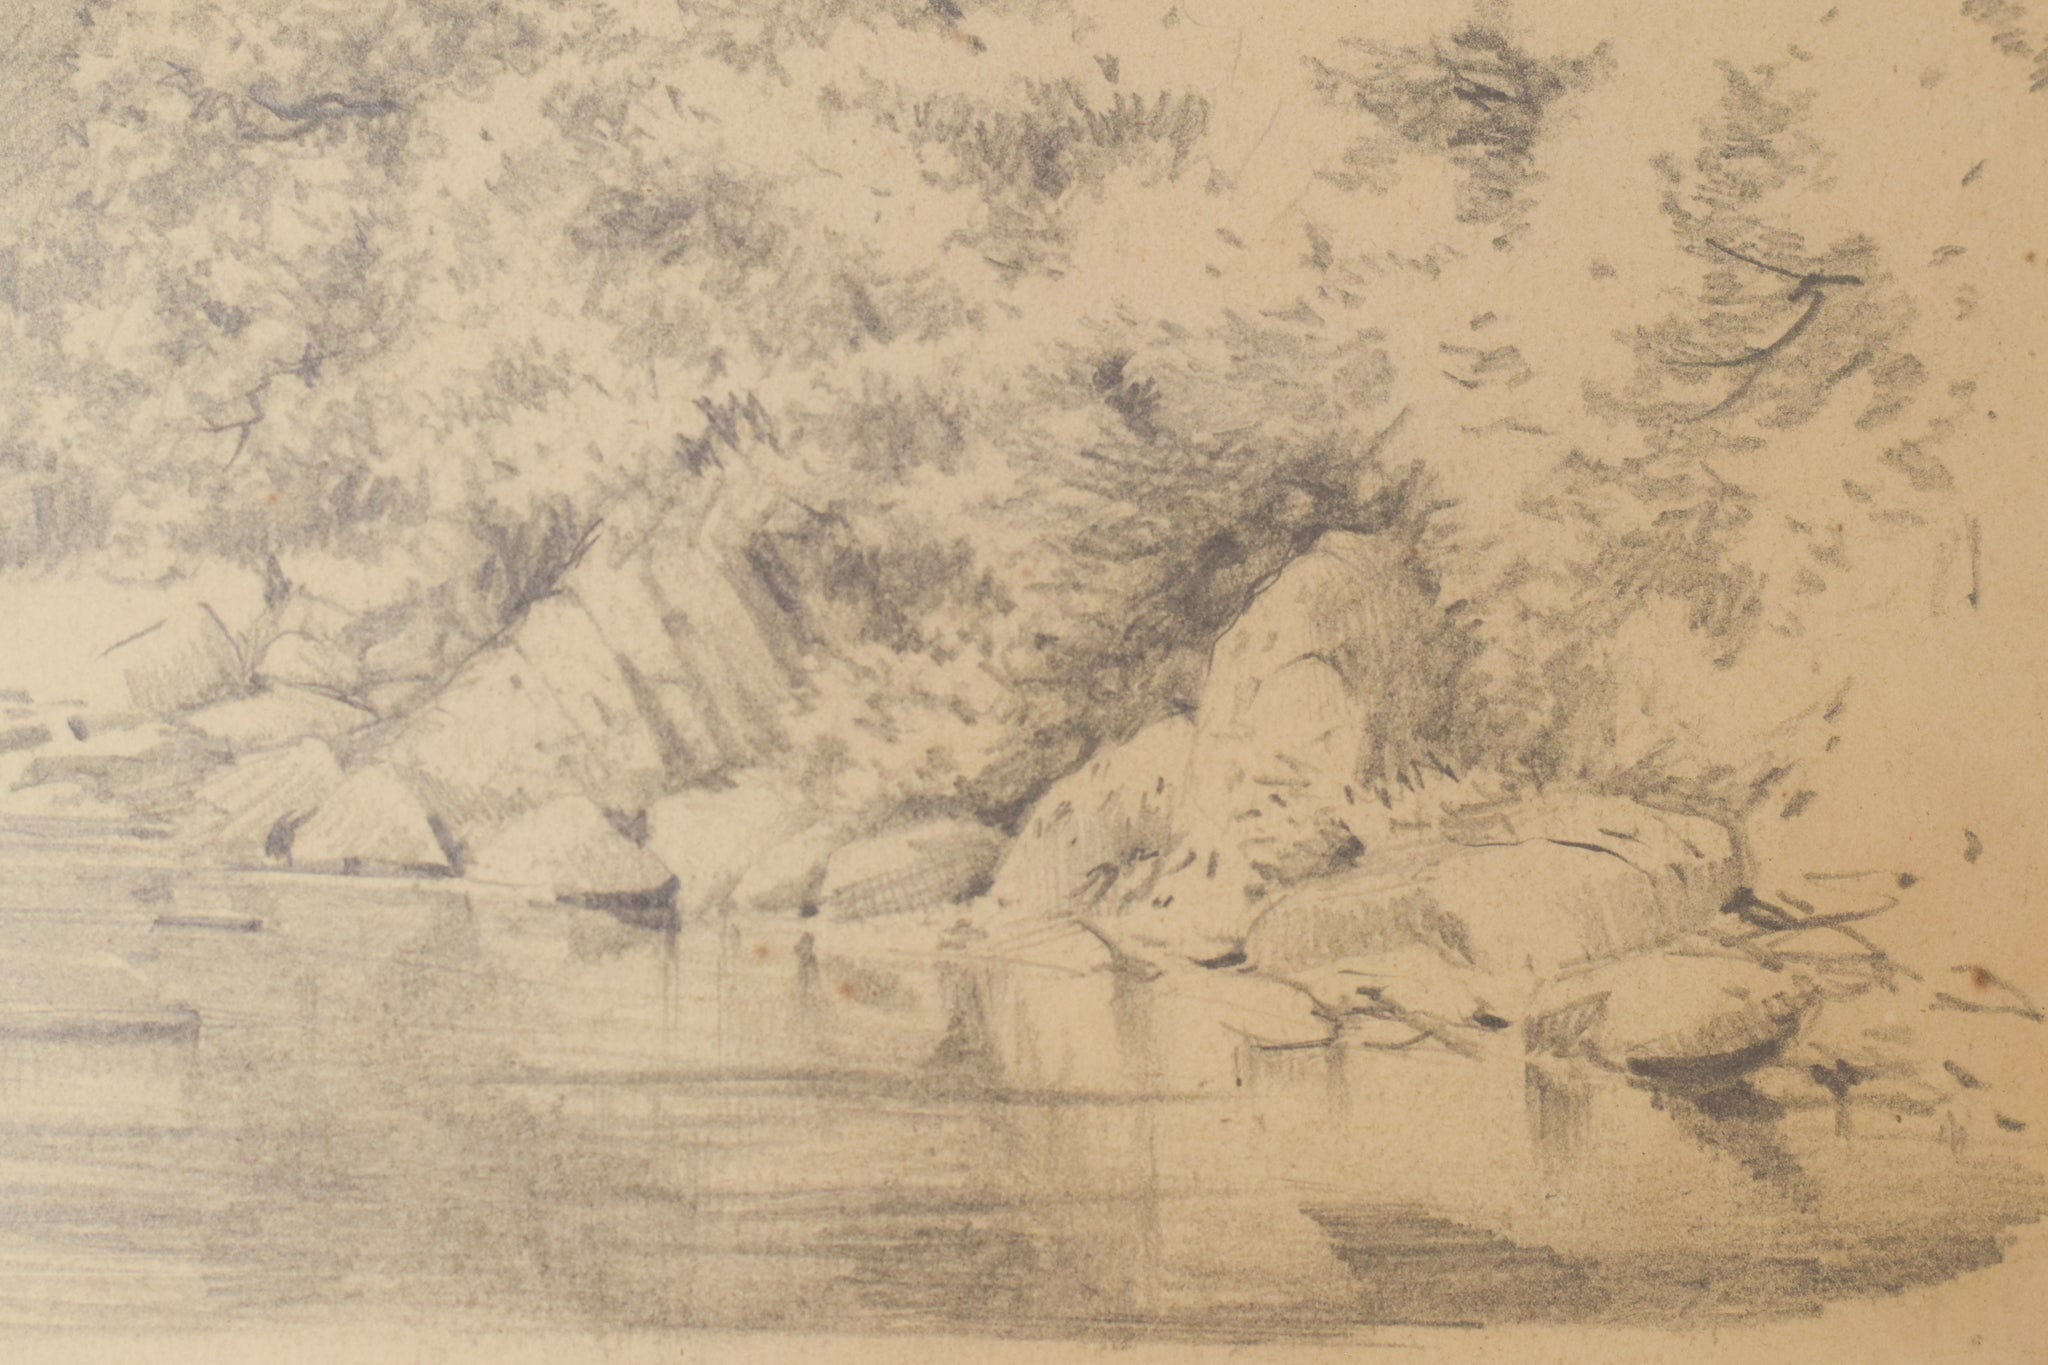 'On The Cree' Landscape Drawing of a River. American Artist